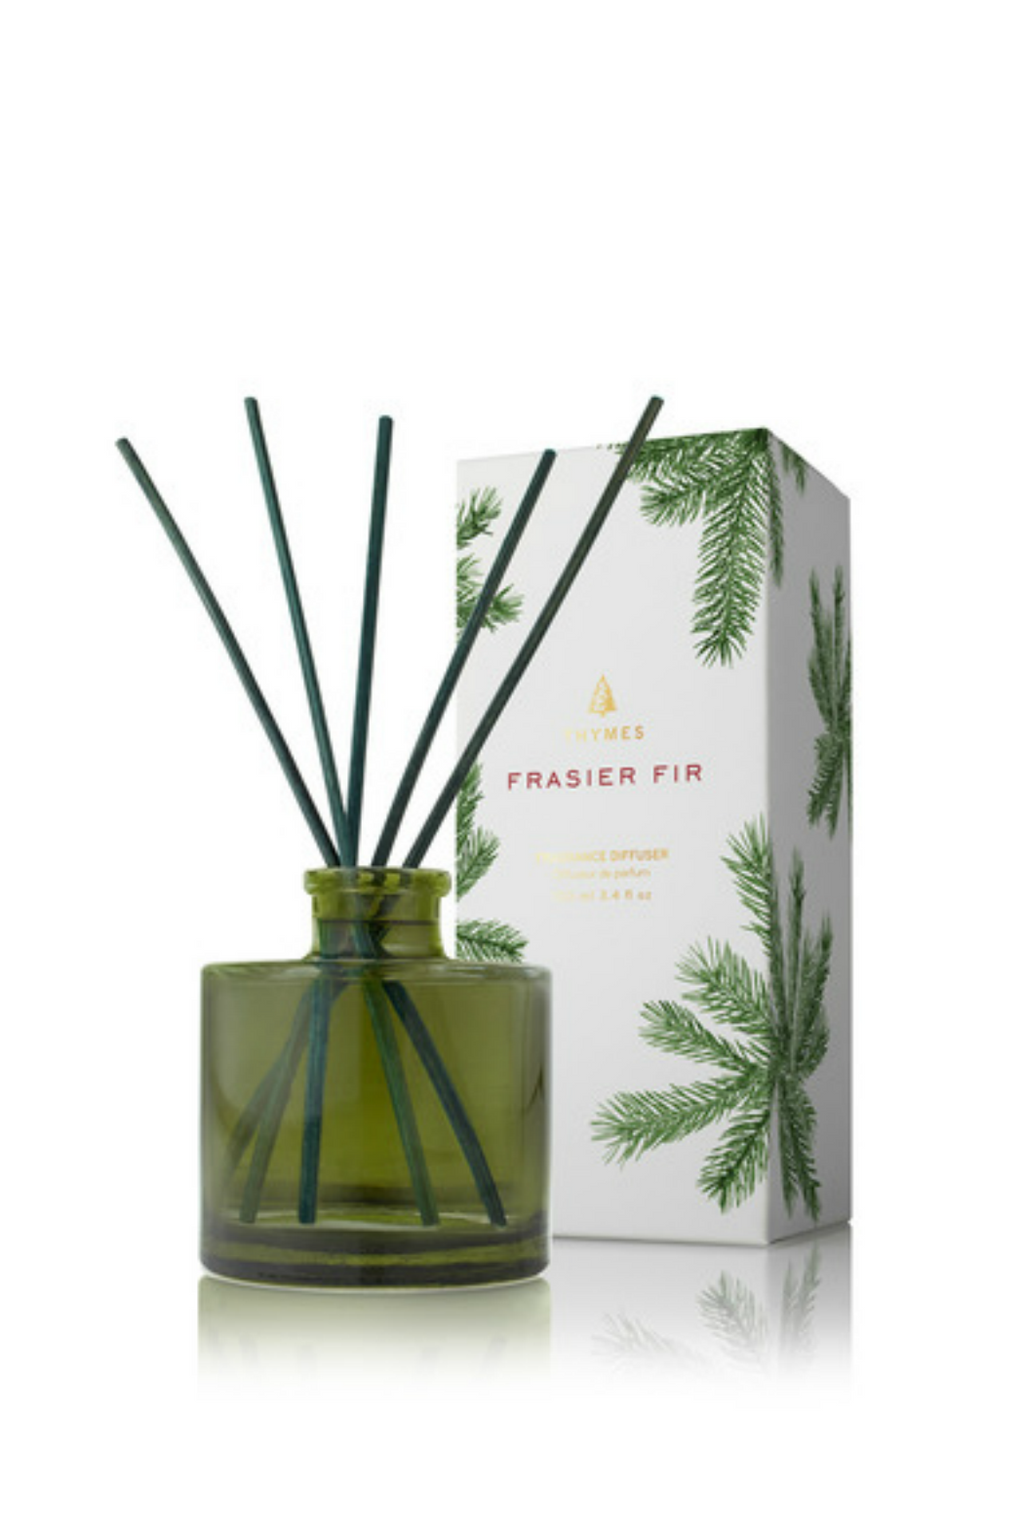 Thymes Frasier Fir Reed Diffuser, Petite Green